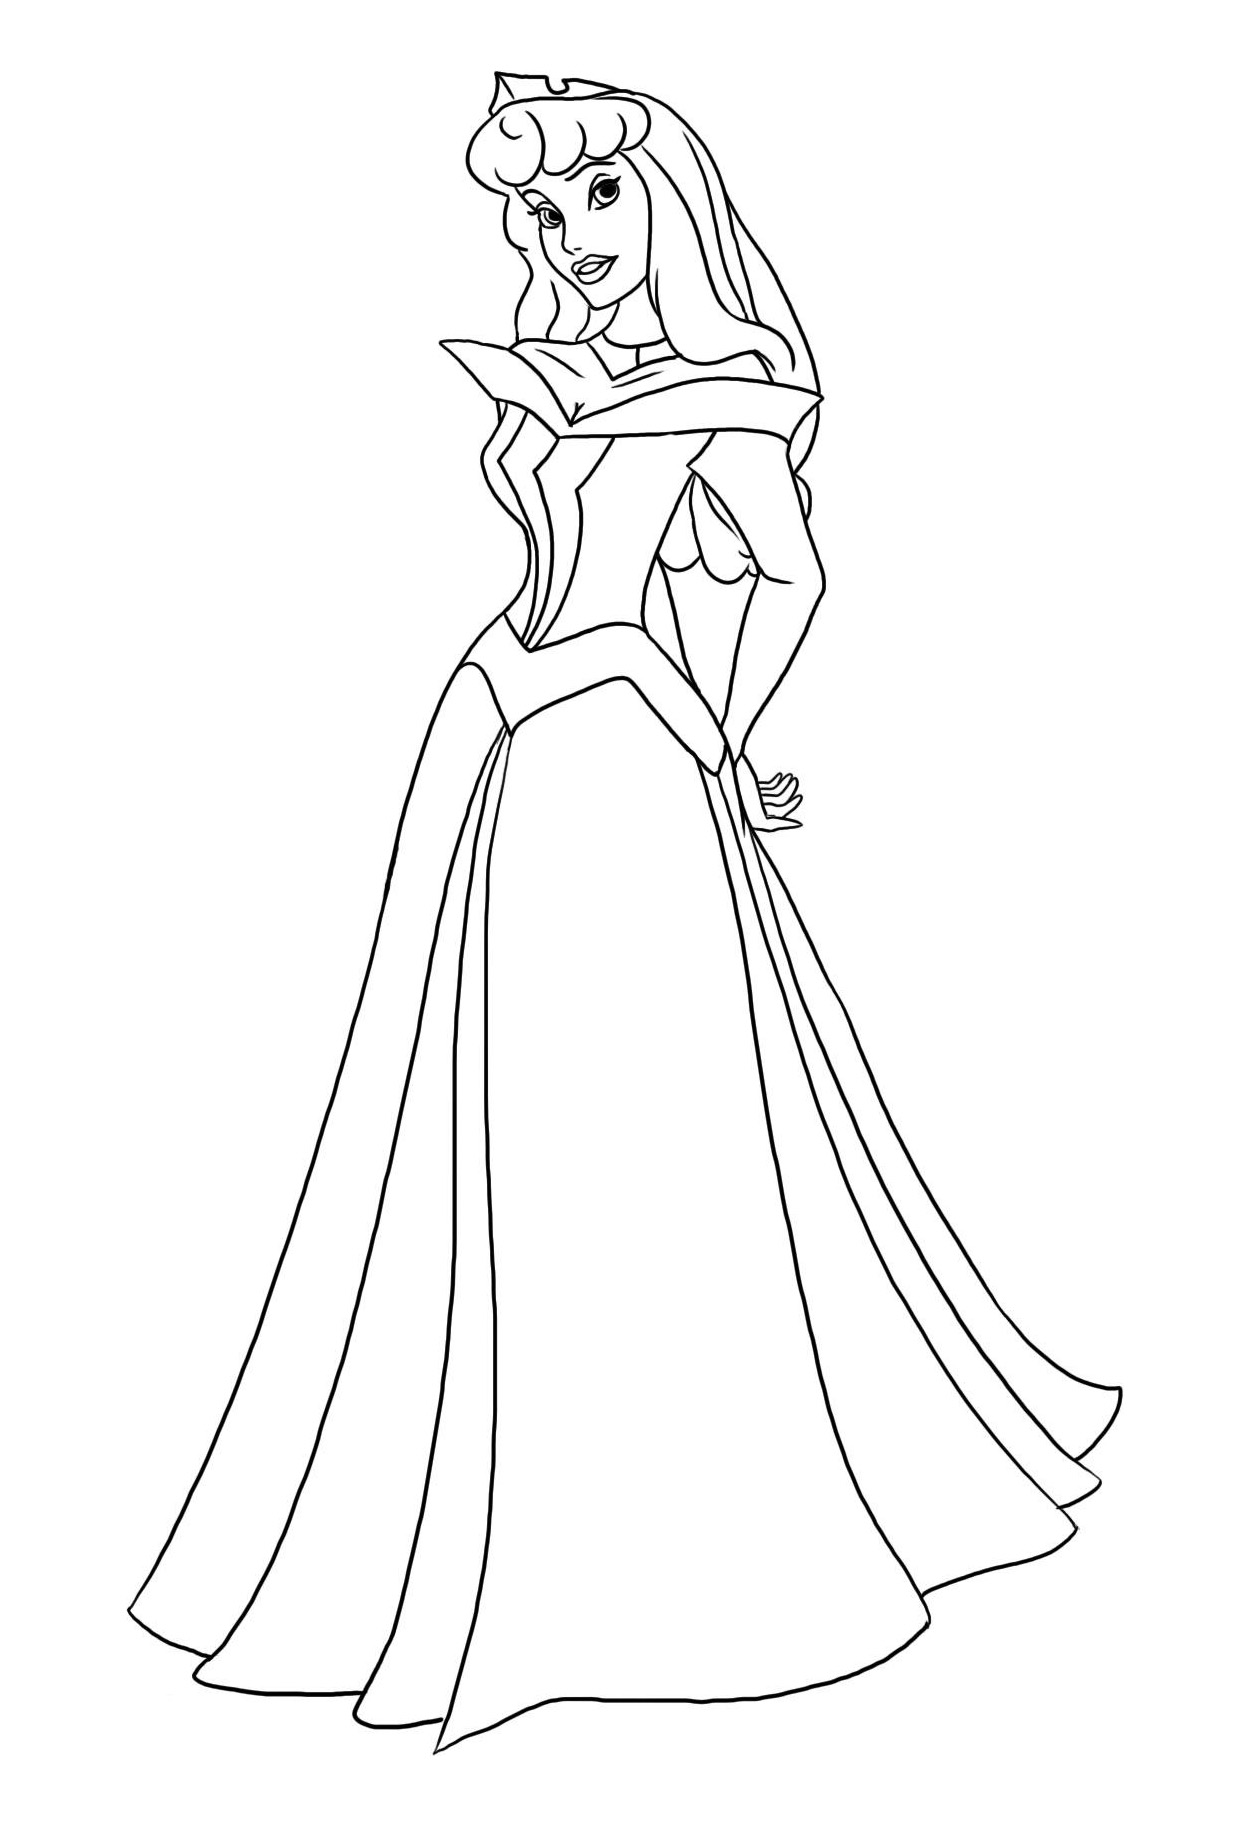 sleeping beauty coloring pages sleeping beauty coloring pages download and print beauty pages sleeping coloring